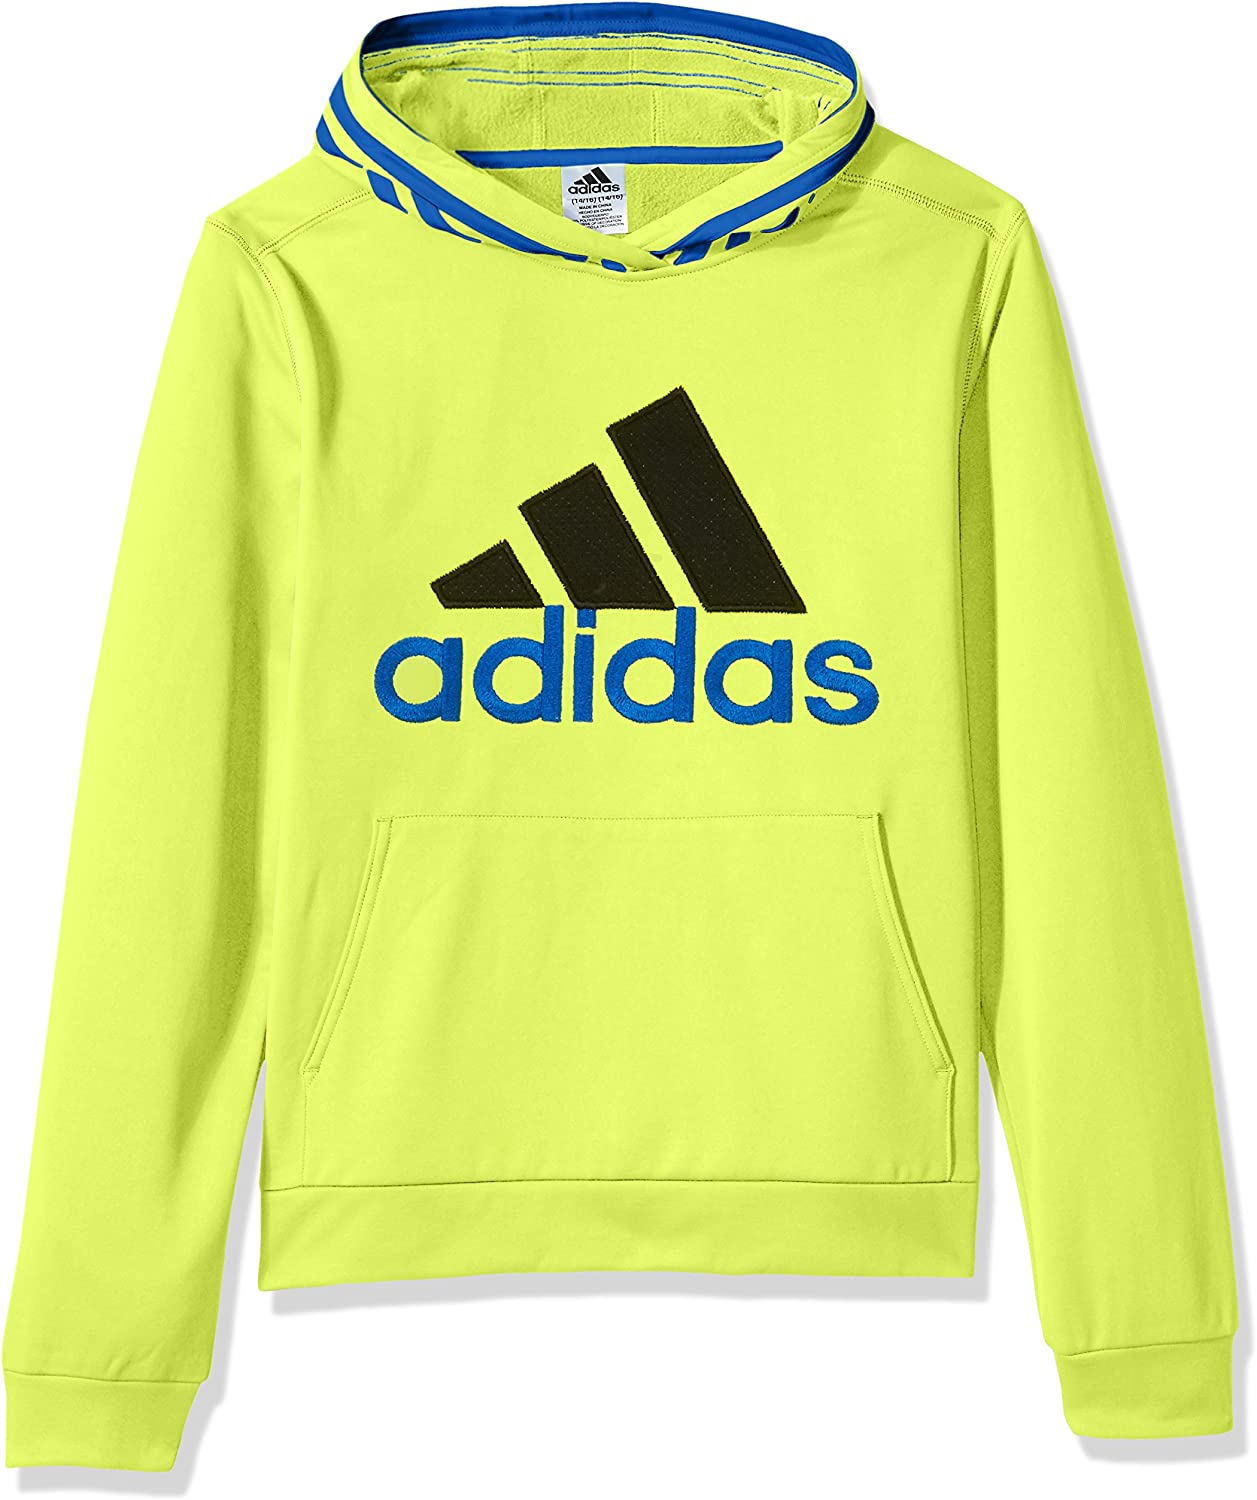 adidas Boys' Active Sport Athletic Pullover Hooded Sweatshirt